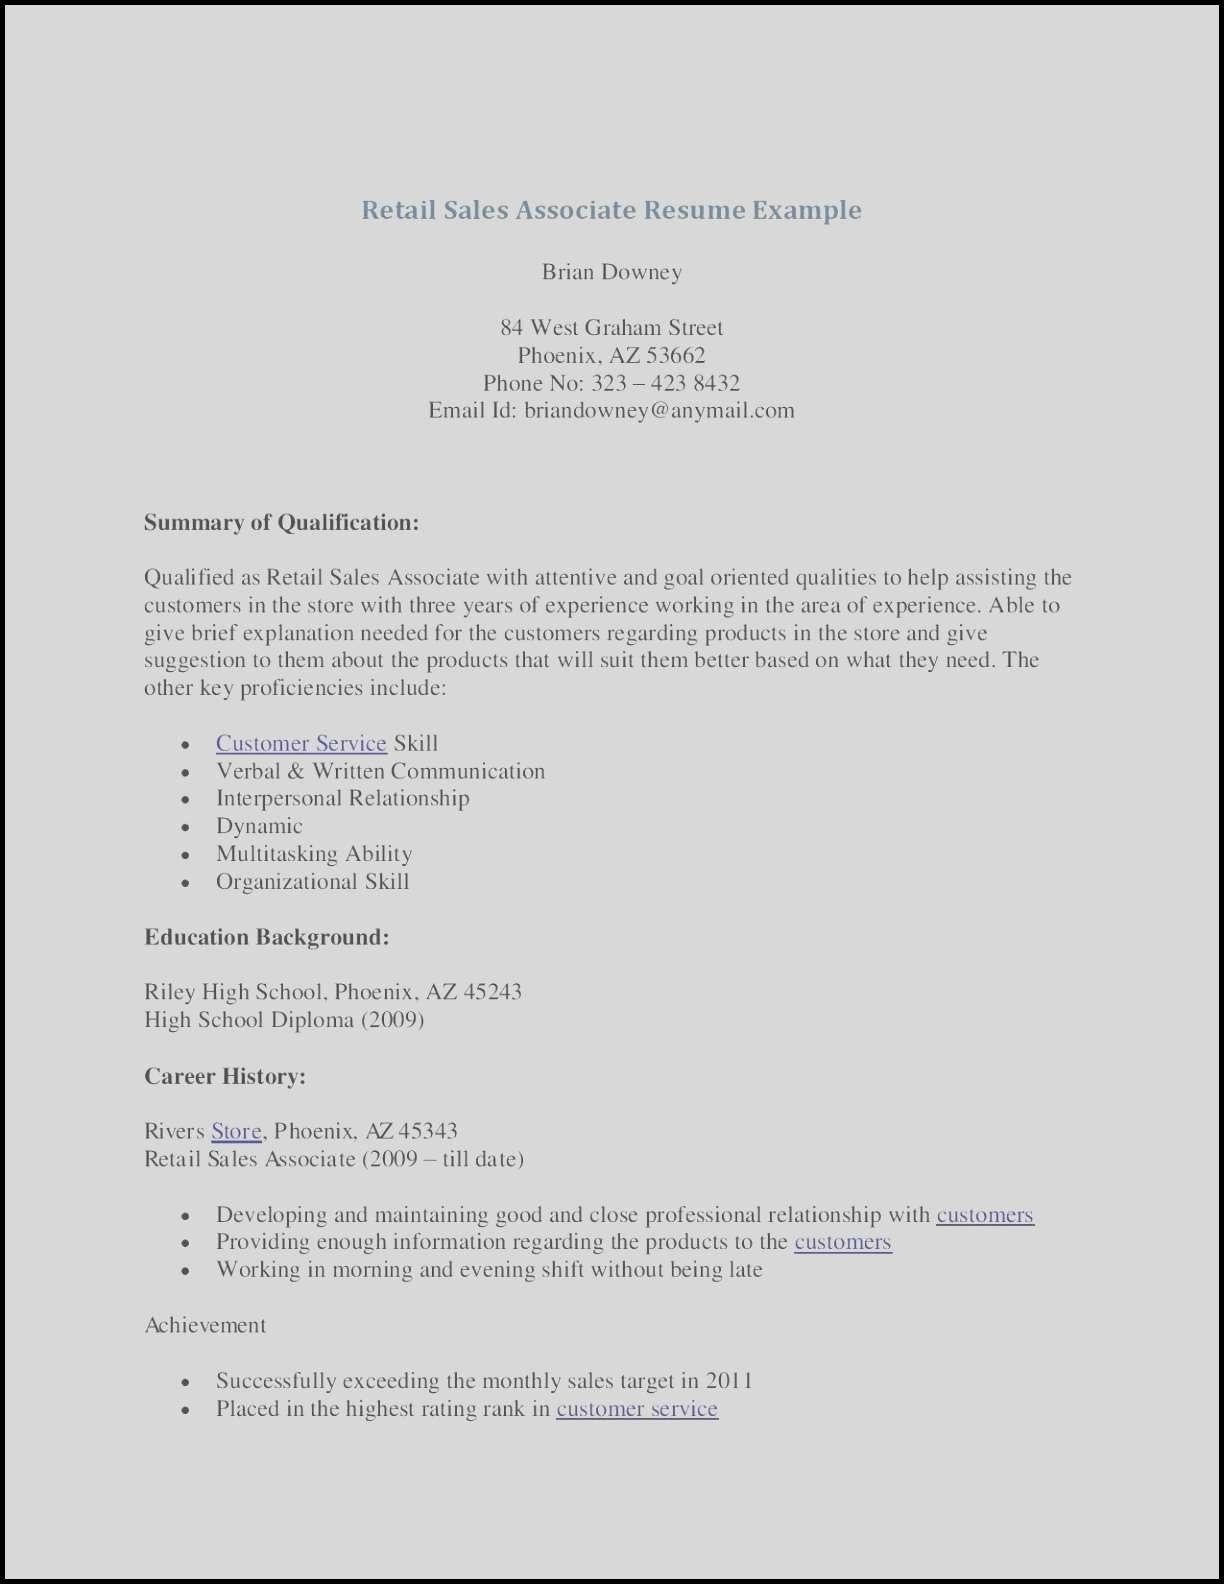 Sales Associate Resume Examples Retail Sales Resume Sample Lovely